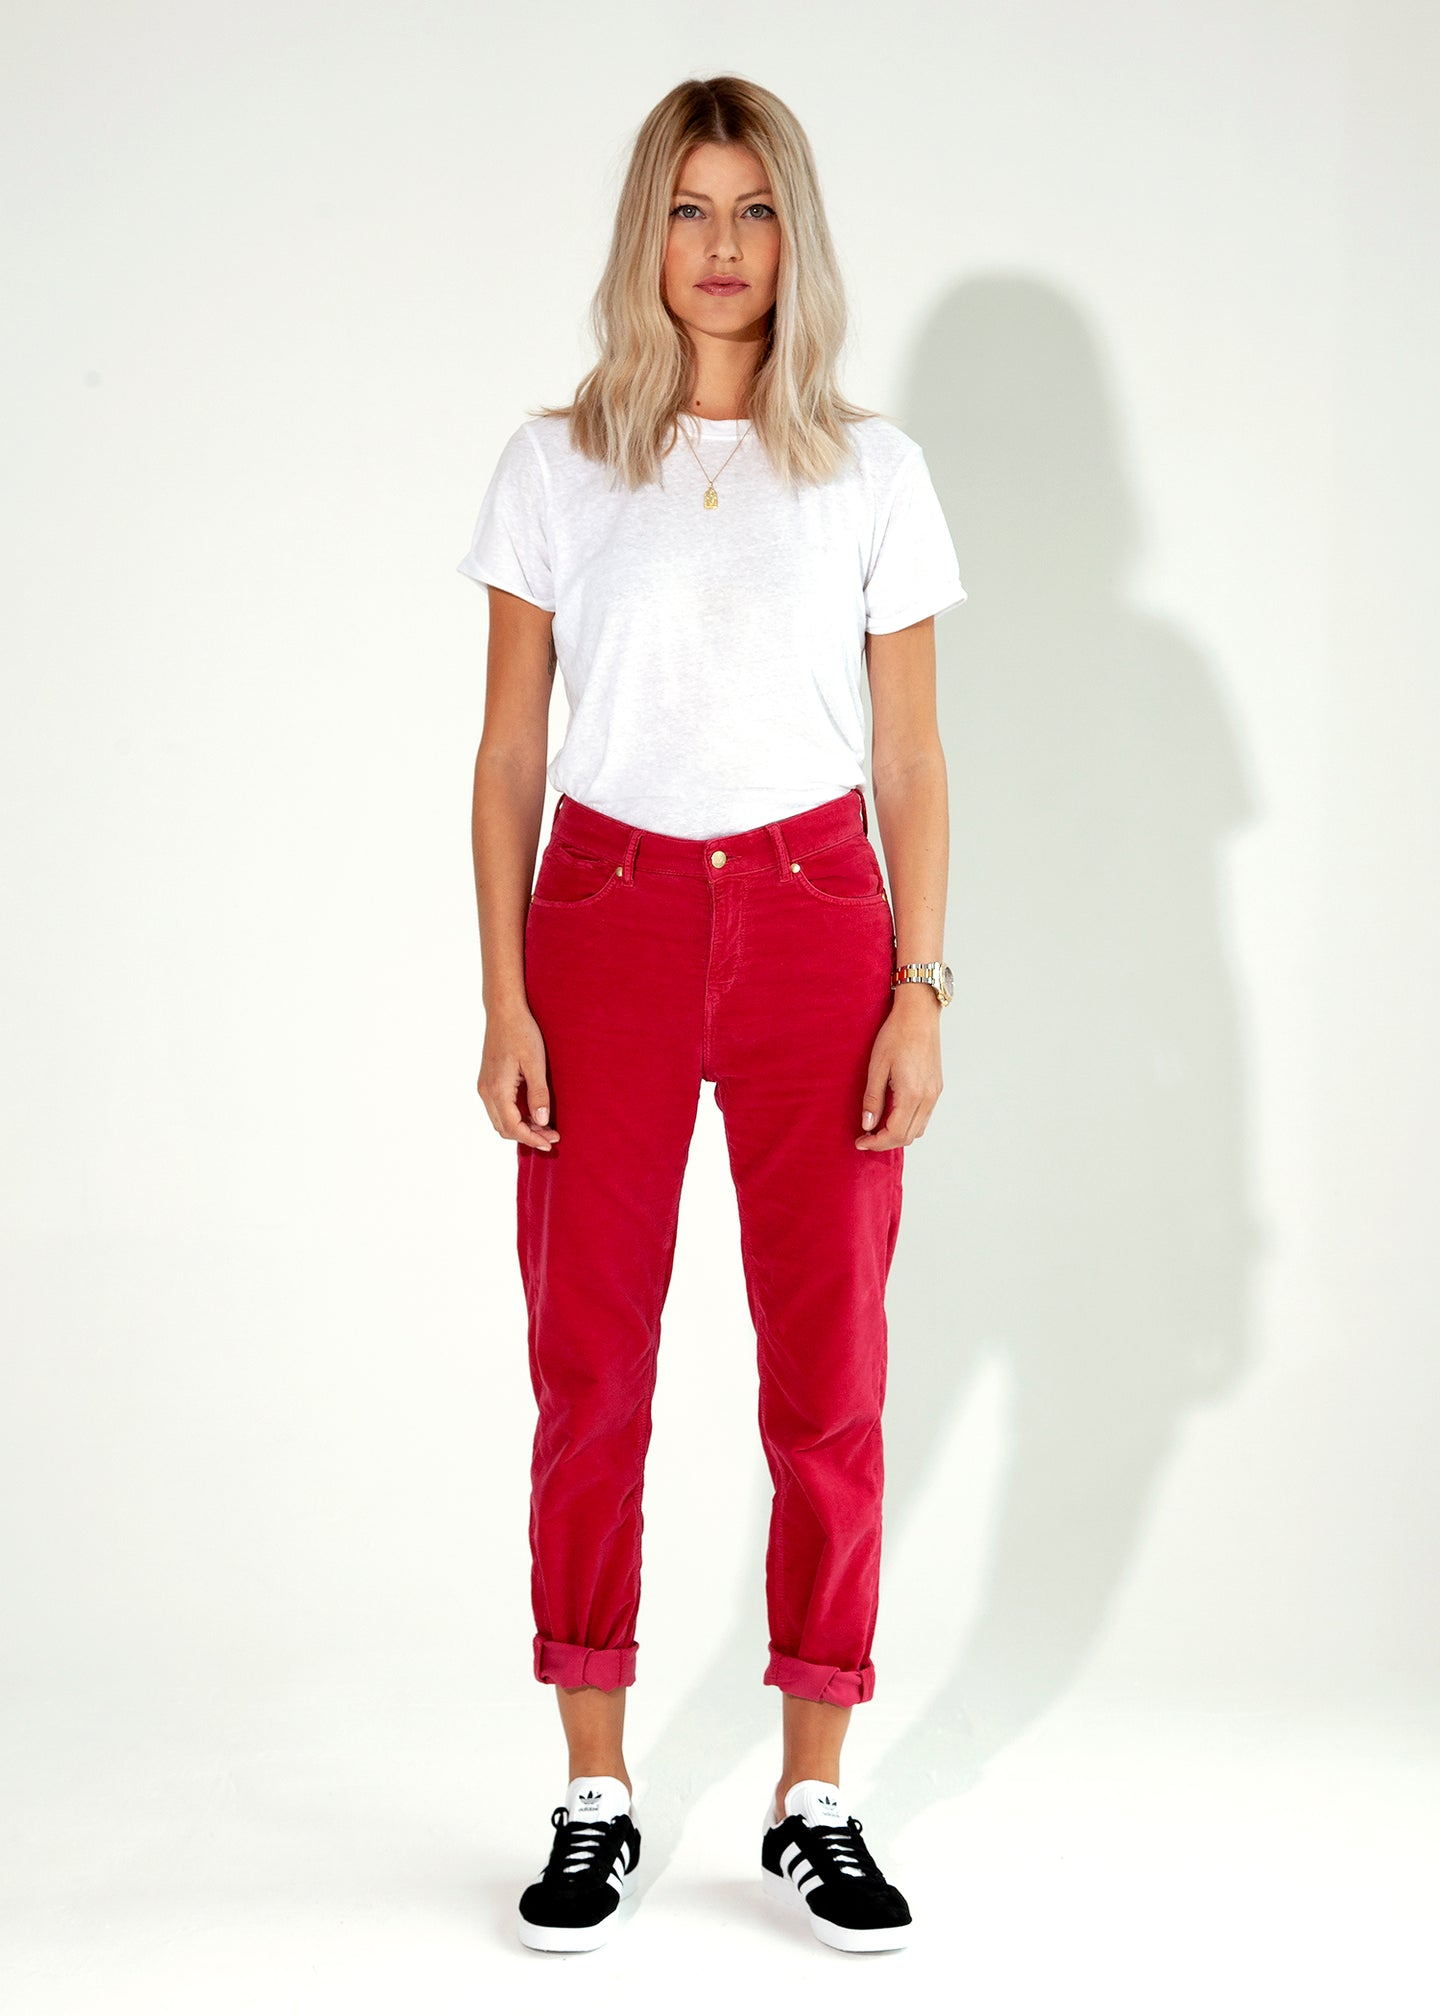 Boy Dazzler Jeans - Corded Heaven